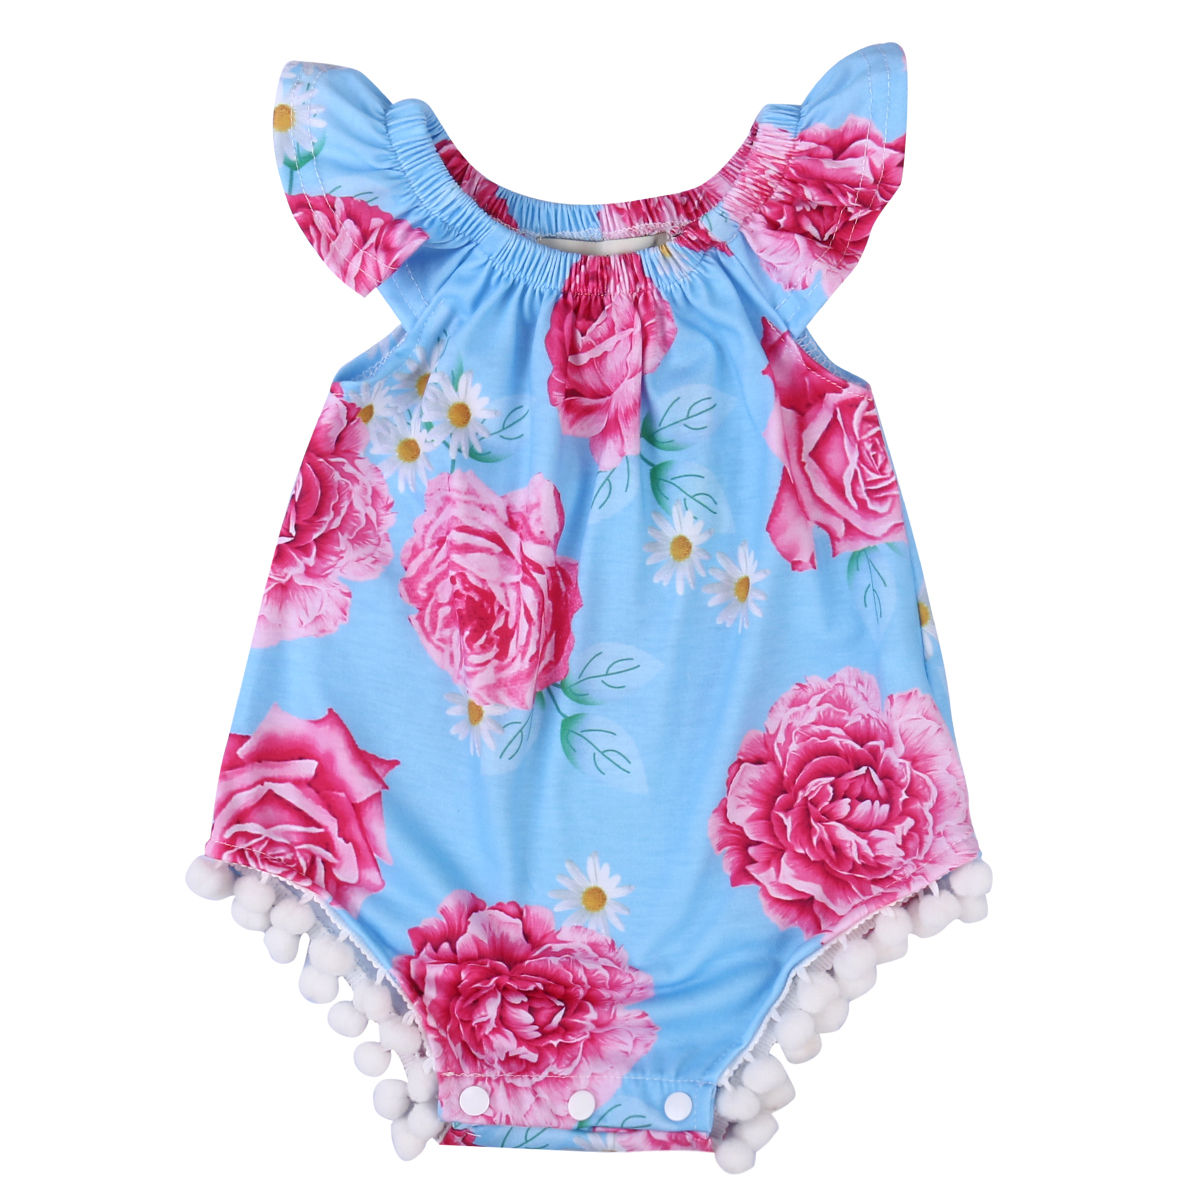 Lovely Newborn Baby Girl Clothes Floral Romper 2017 Summer Sleeveless Infant Bebes Toddler Kids Jumpsuit Outfit Sunsuit 0-24M newborn infant baby clothes girl lace strap floral romper jumpsuit headband 2pcs summer baby girl romper clothes baby onesie